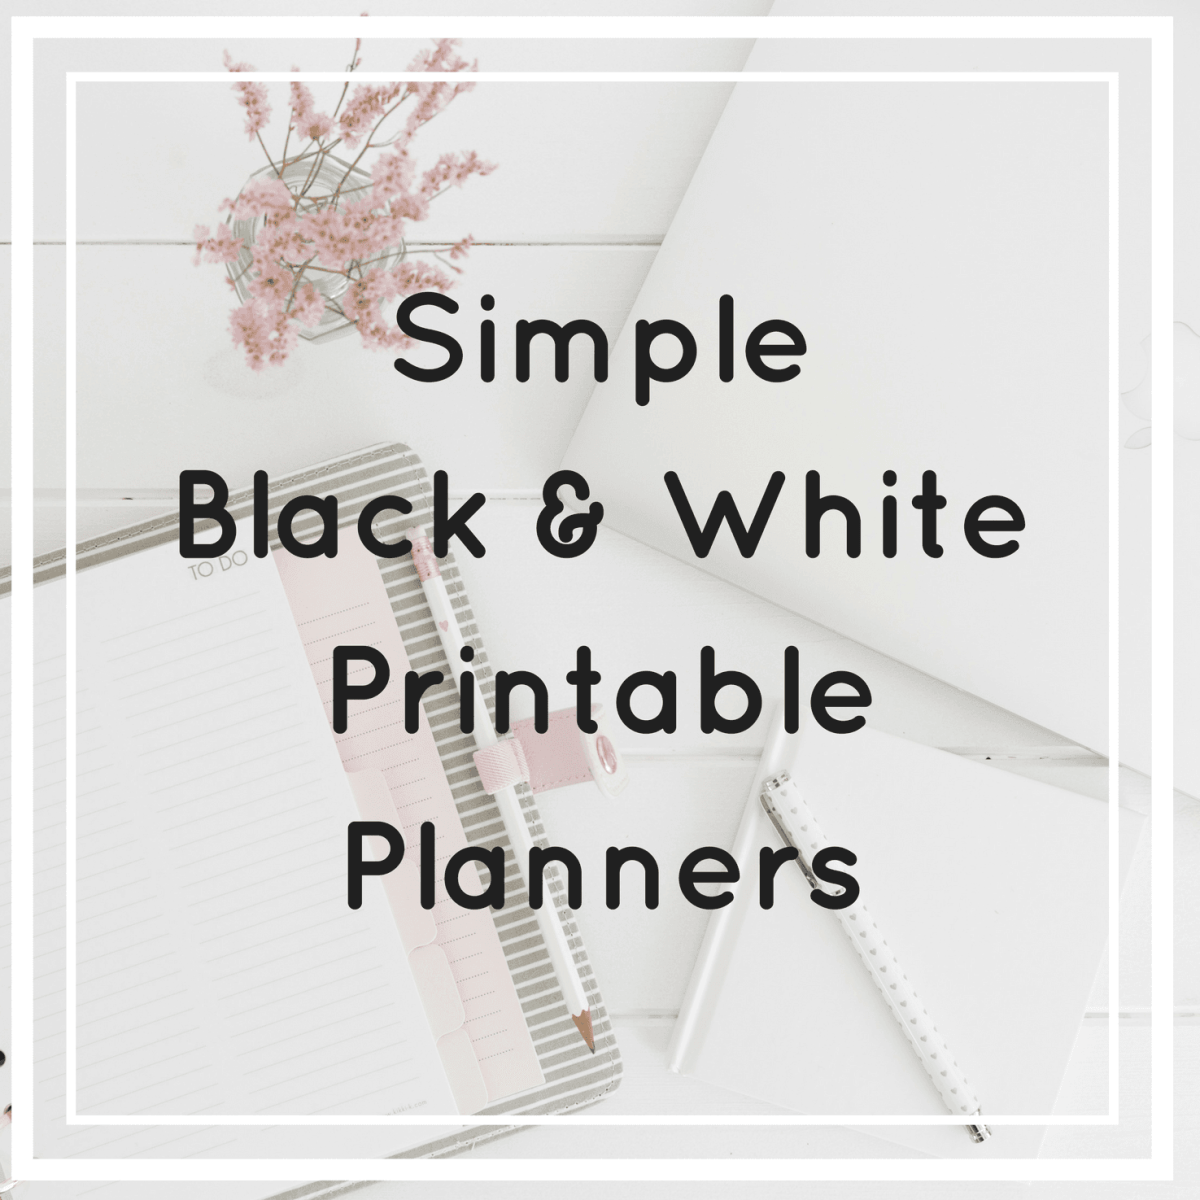 Simple Black and White Printable Planners